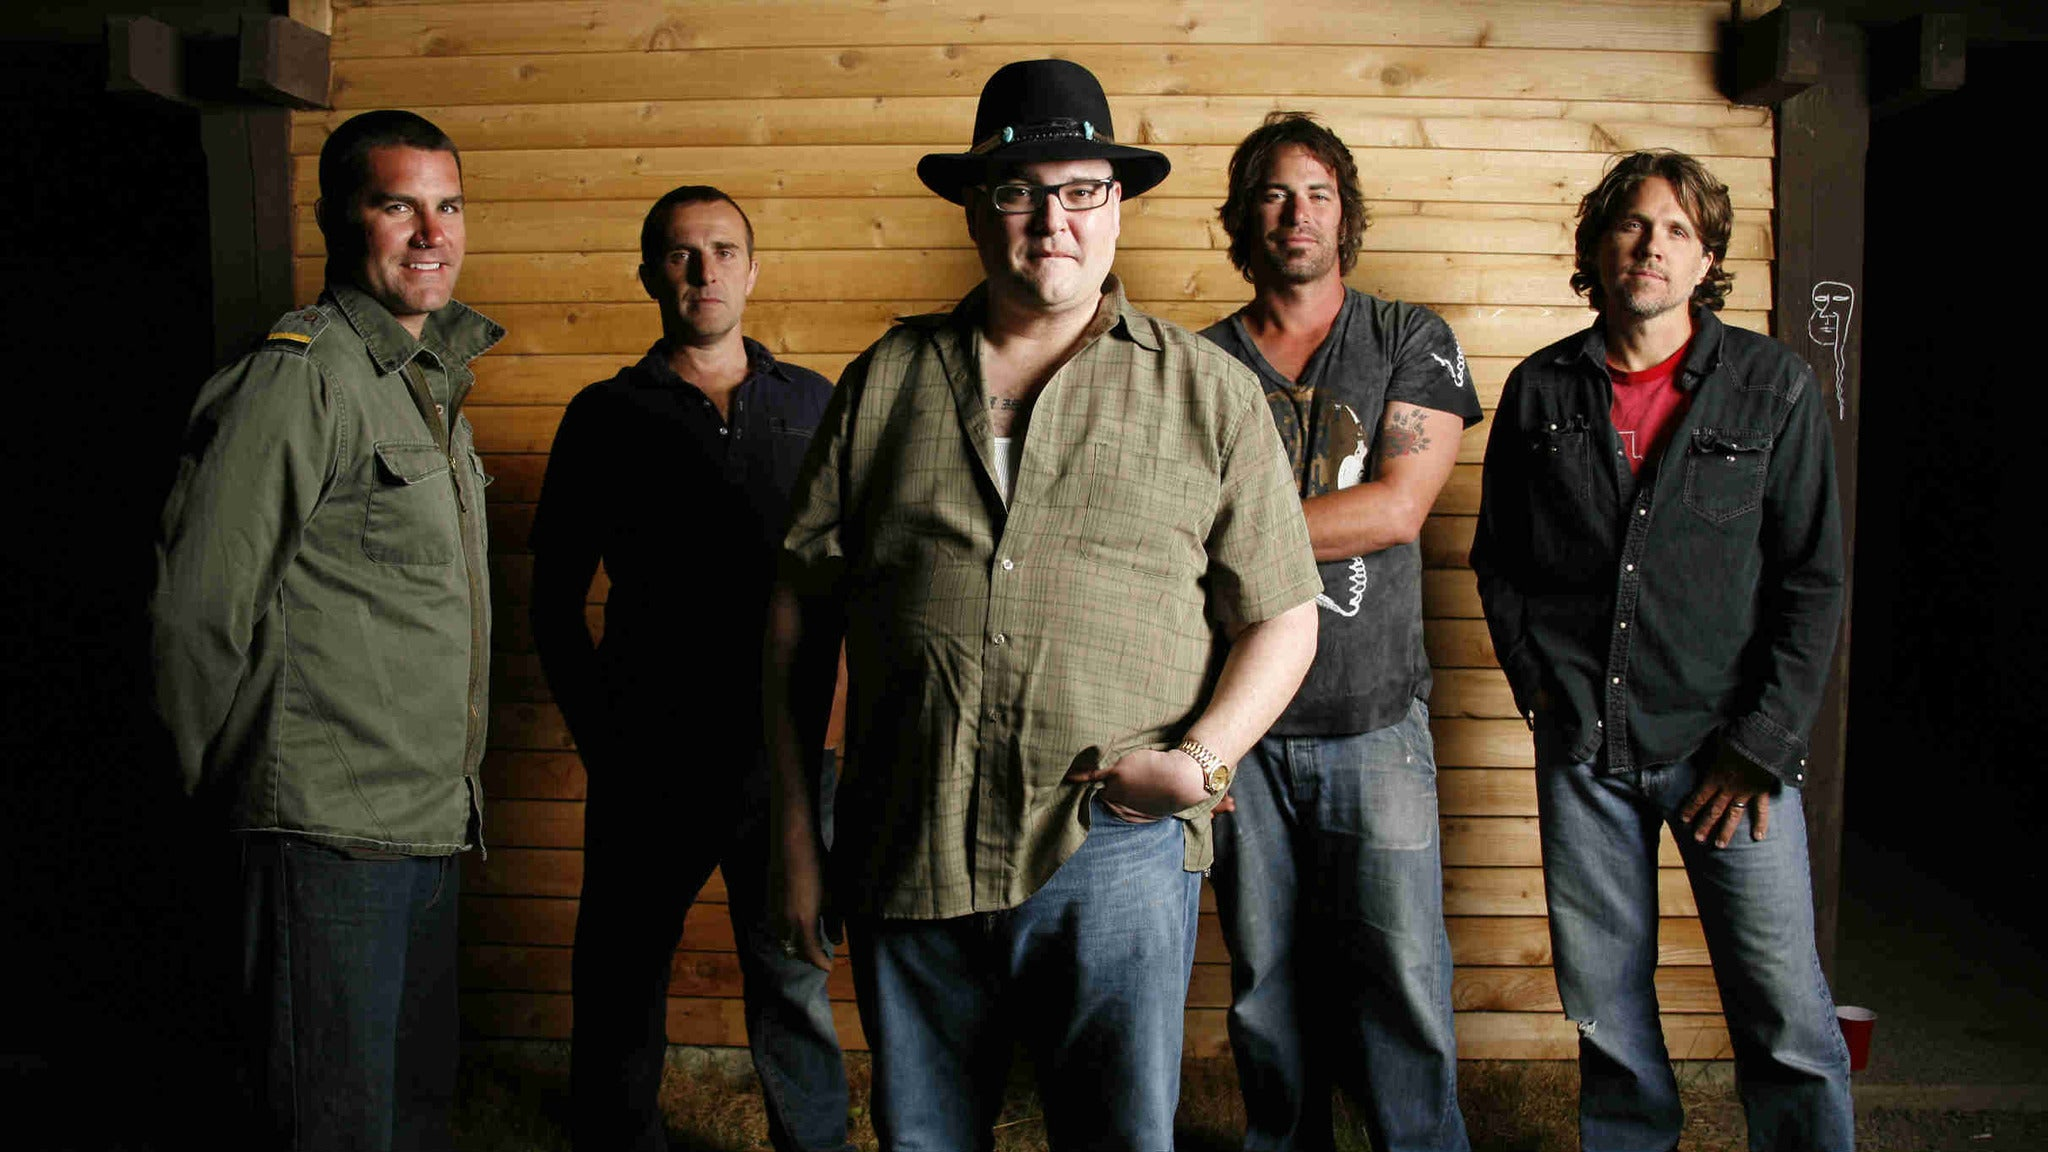 Blues Traveler - 30th Anniversary Tour at Revolution Live